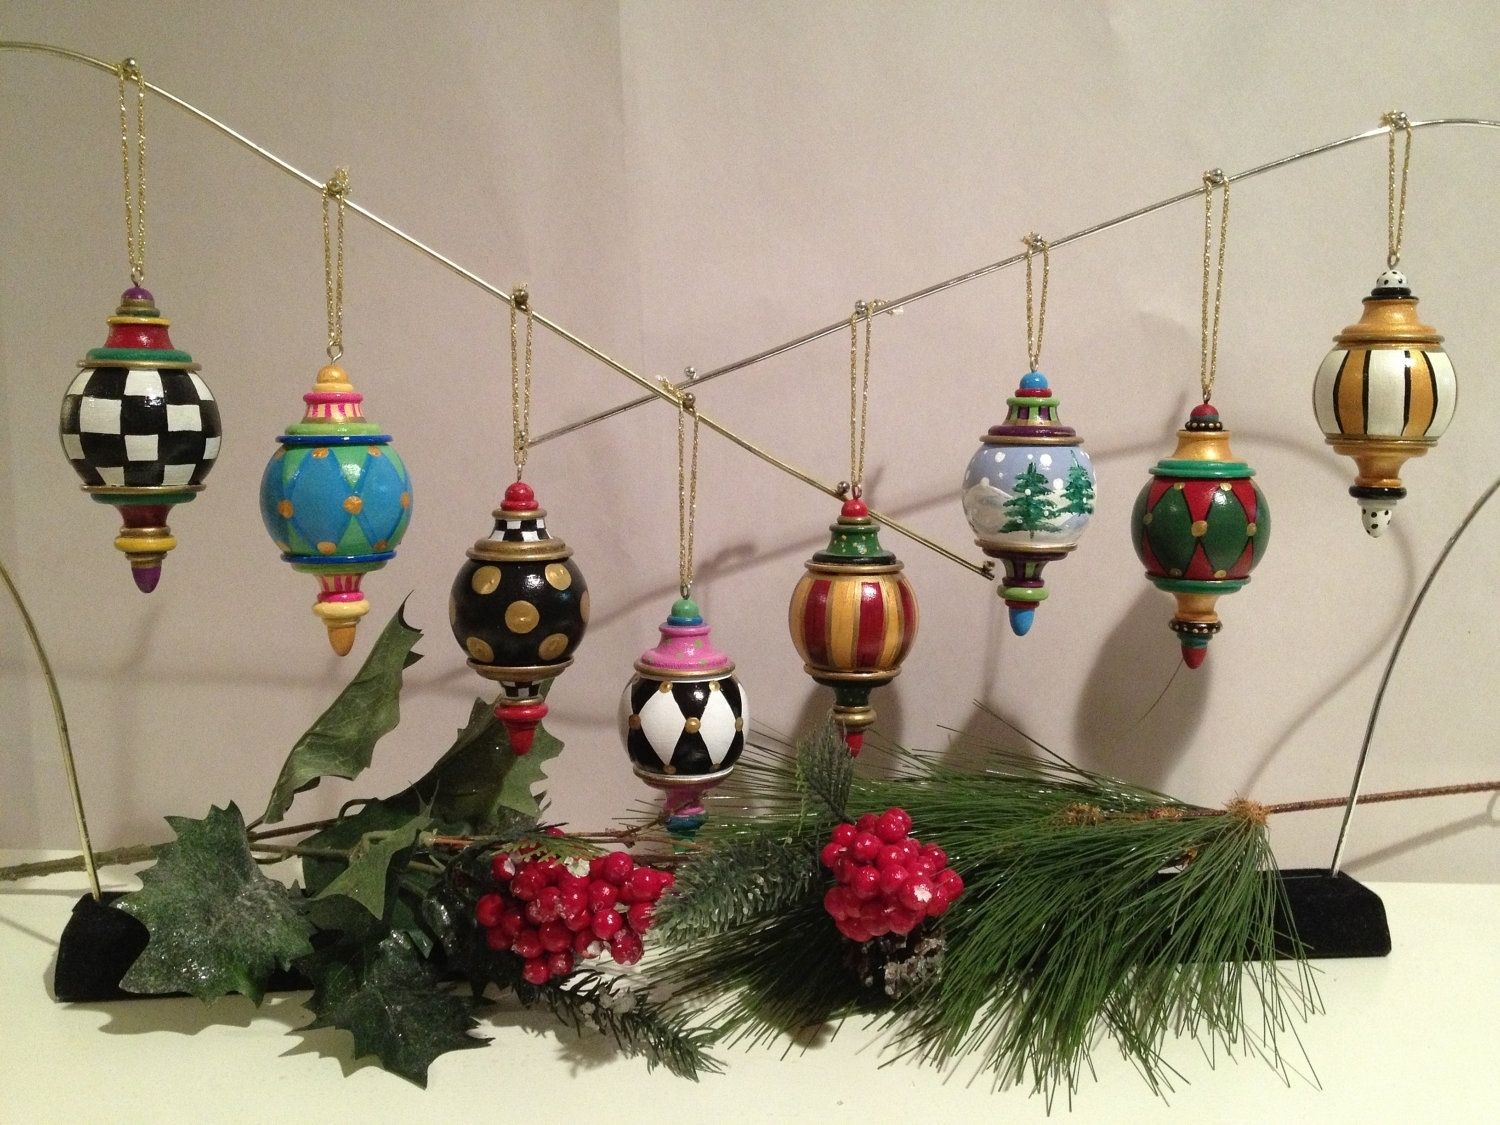 buy hand made hand painted solid wood finial ornaments made to order from michele sprague. Black Bedroom Furniture Sets. Home Design Ideas